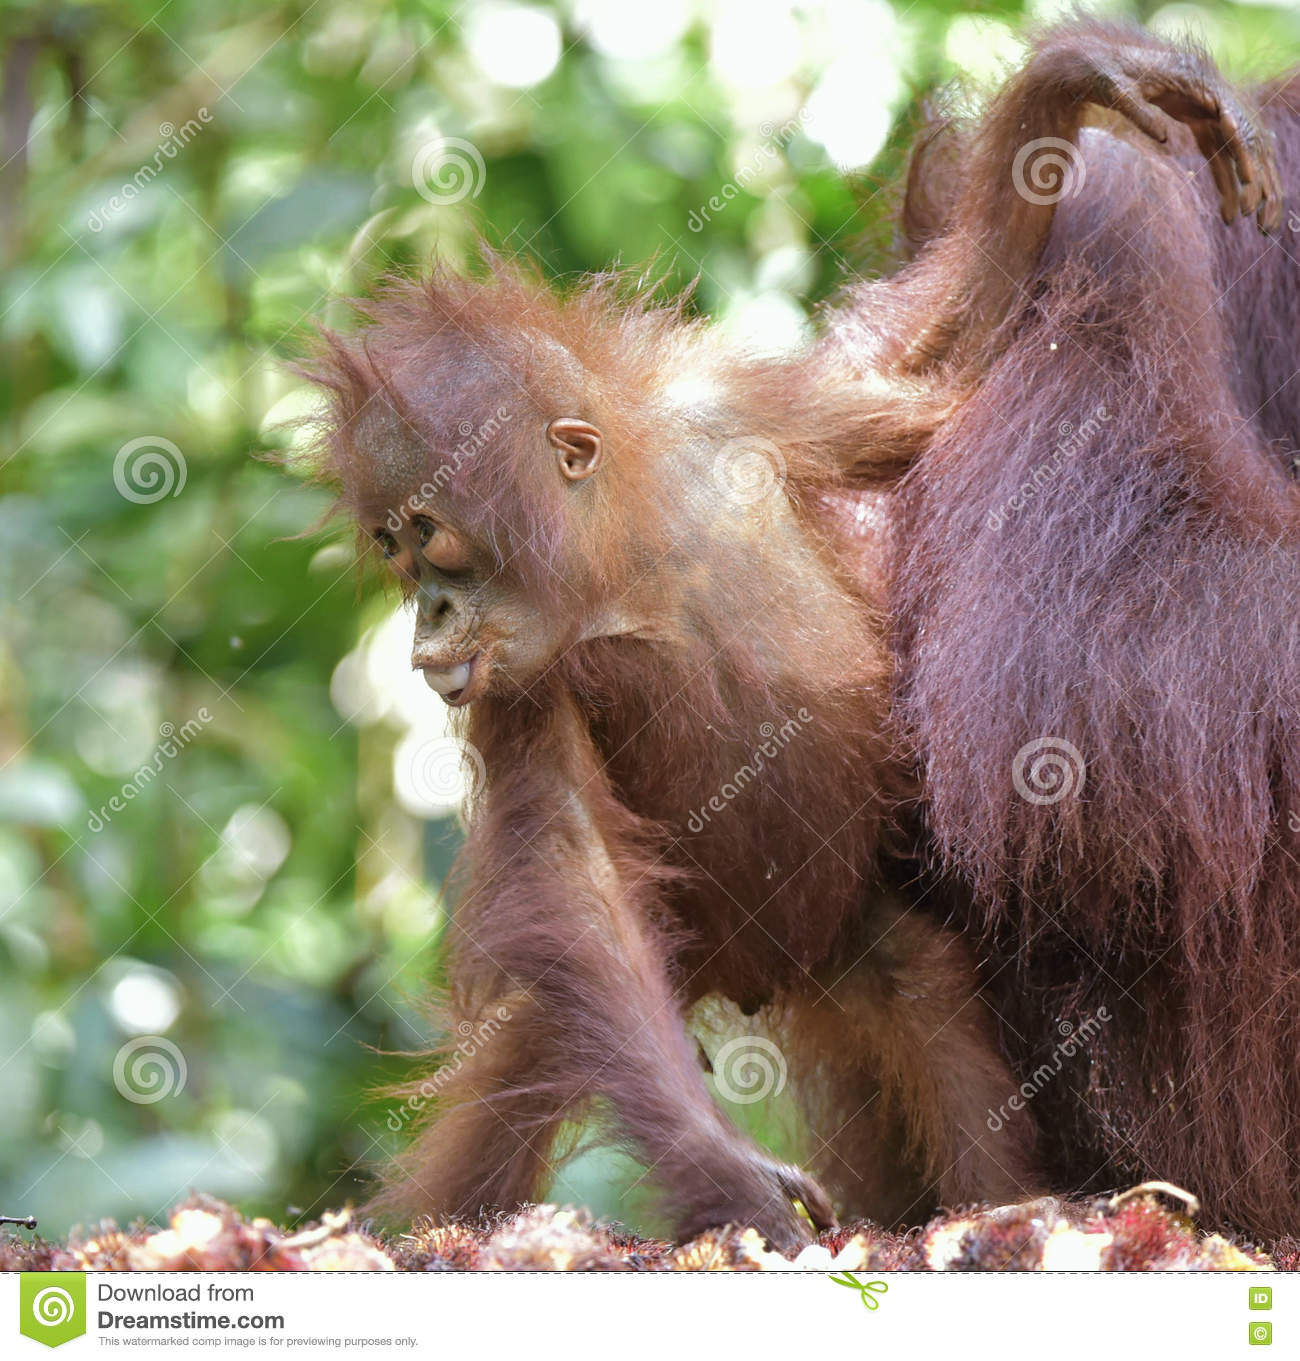 analysis of the orangutan pongo pygmaeus But genetic analysis suggests that the mcconkey, k, 2005 bornean orangutan (pongo pygmaeus the mission of orangutan foundation international is to.